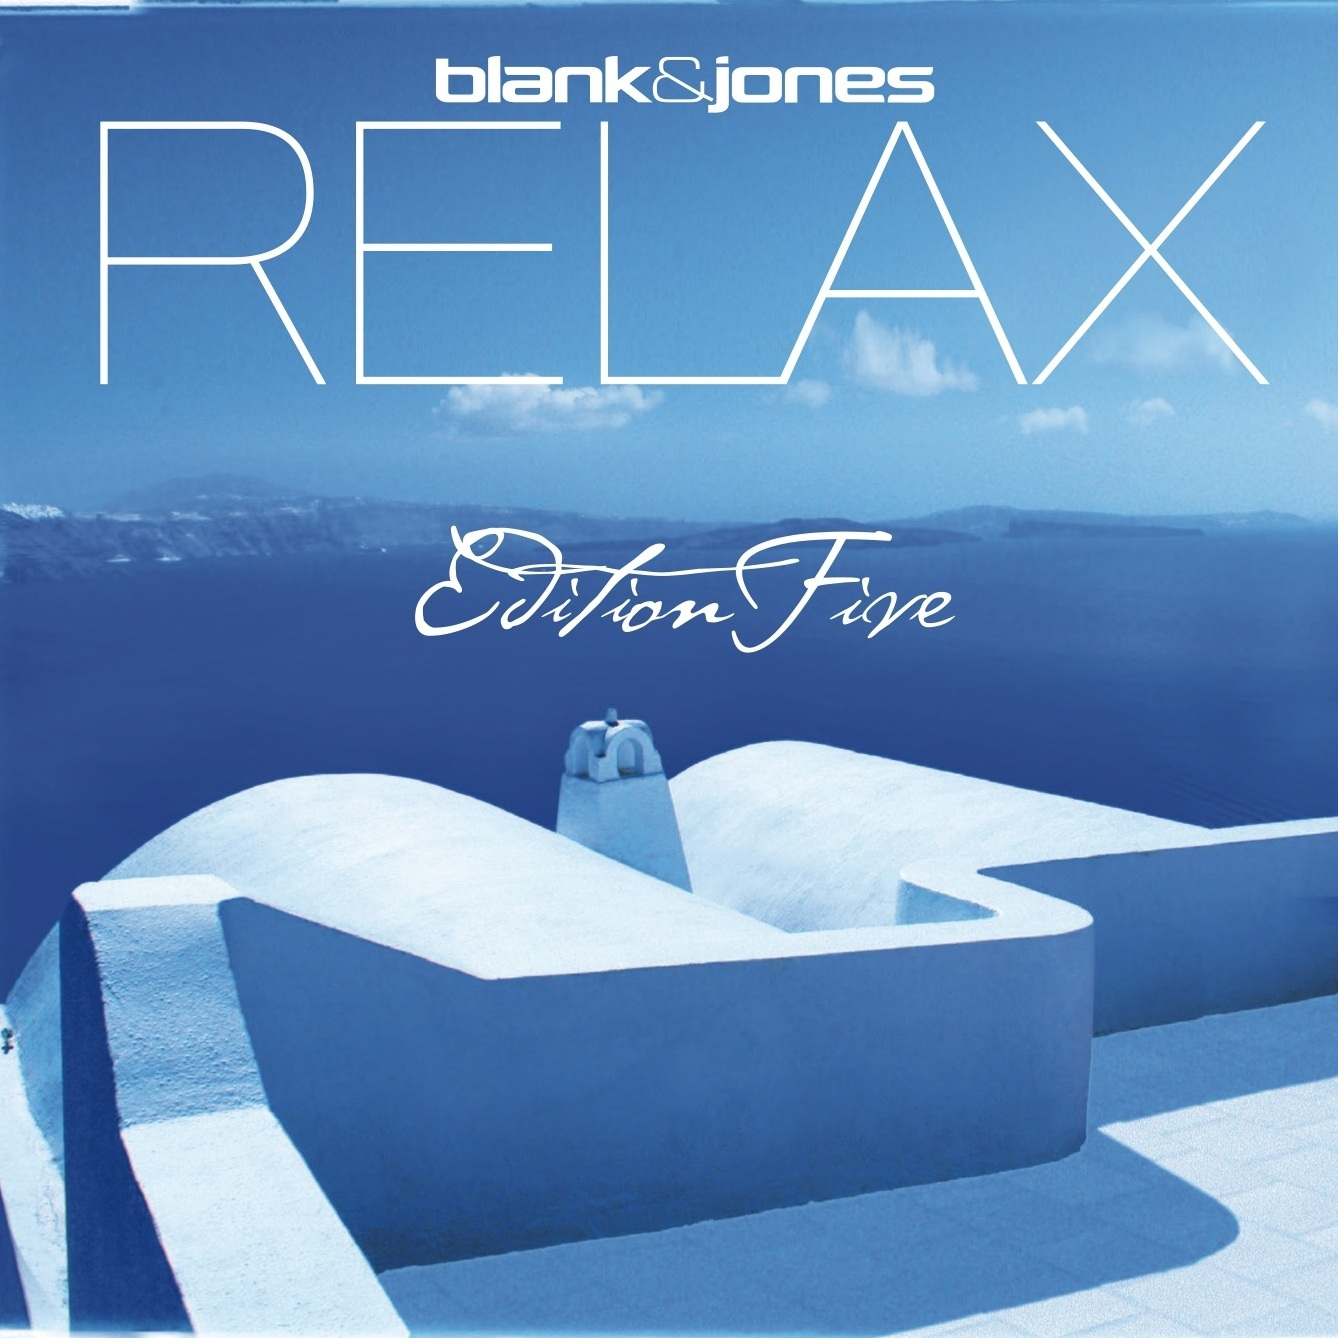 Relax Five Cover